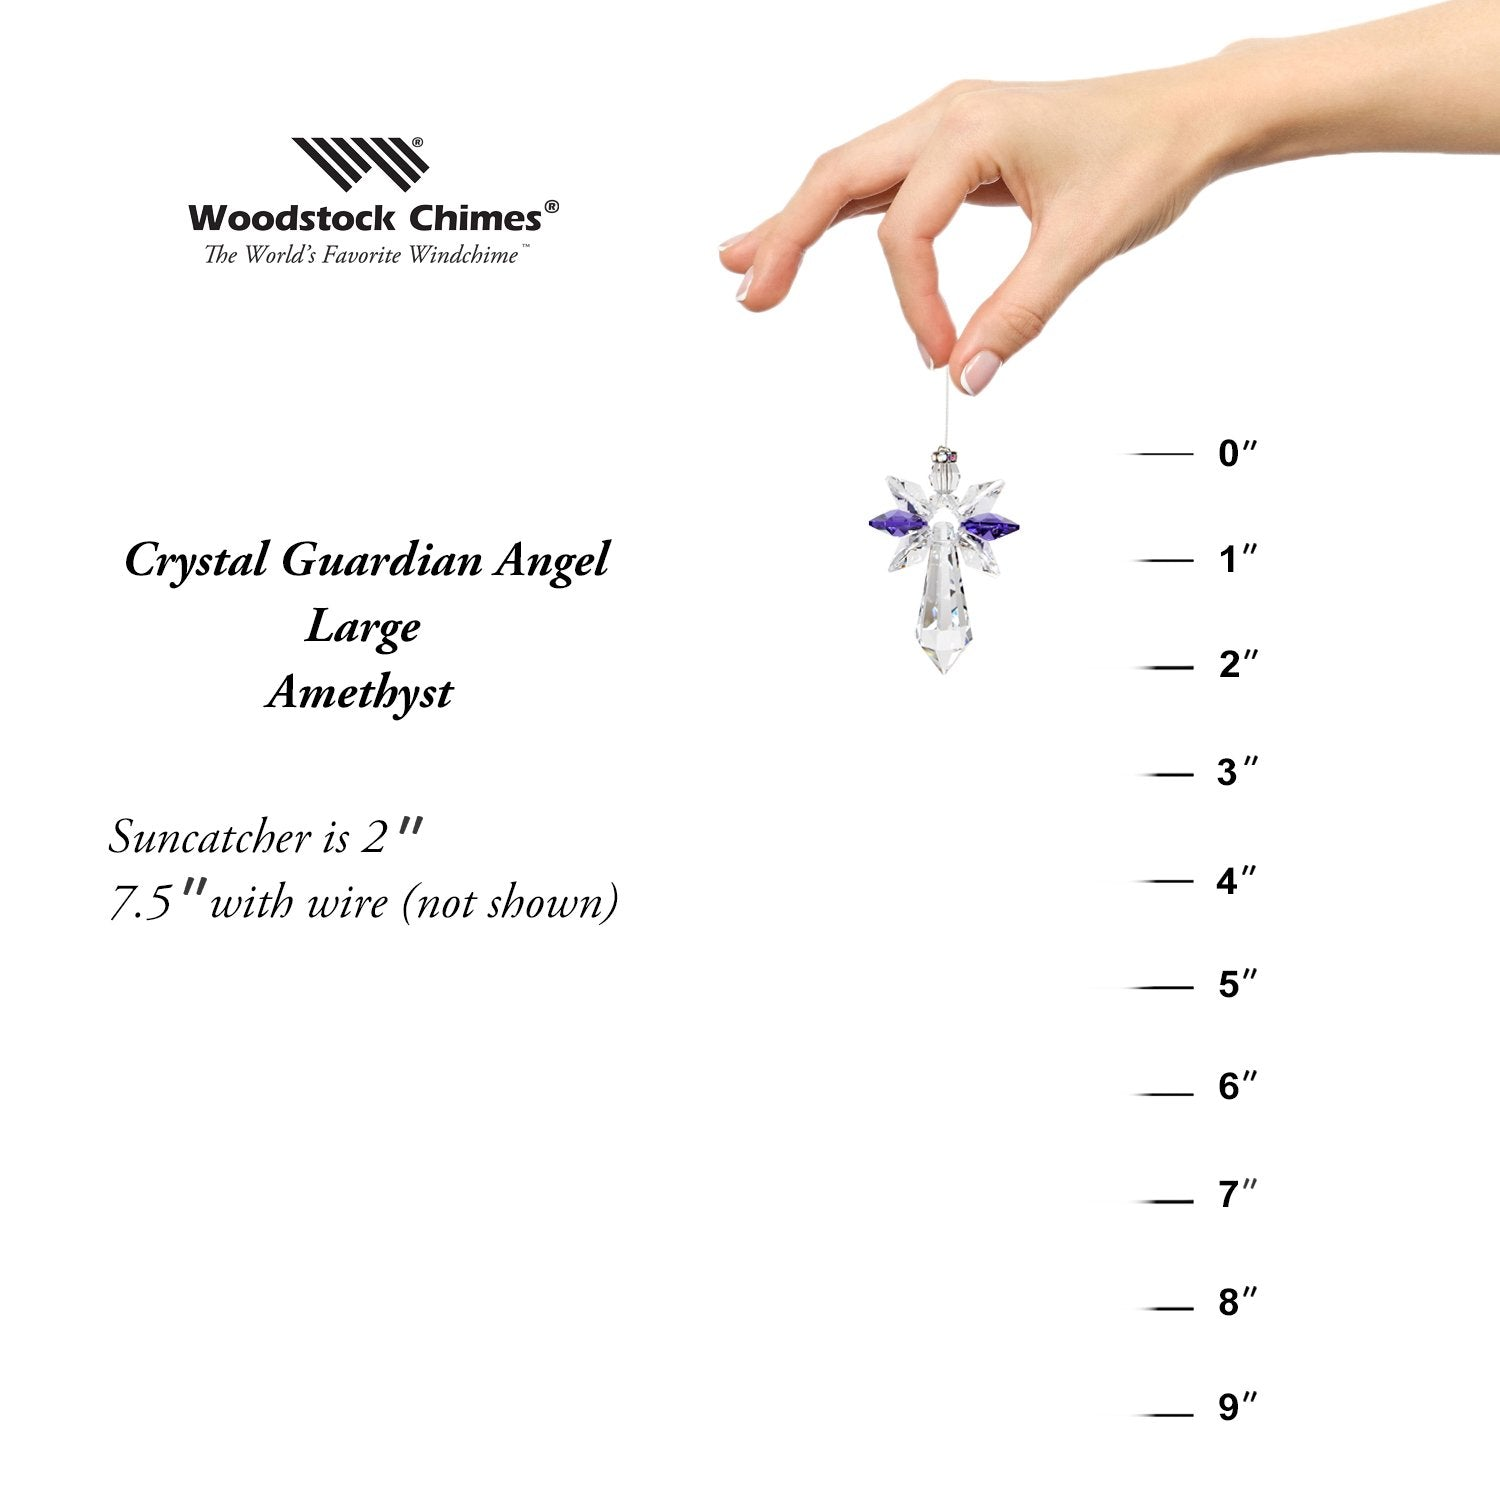 Crystal Guardian Angel Suncatcher - Large, Amethyst proportion image